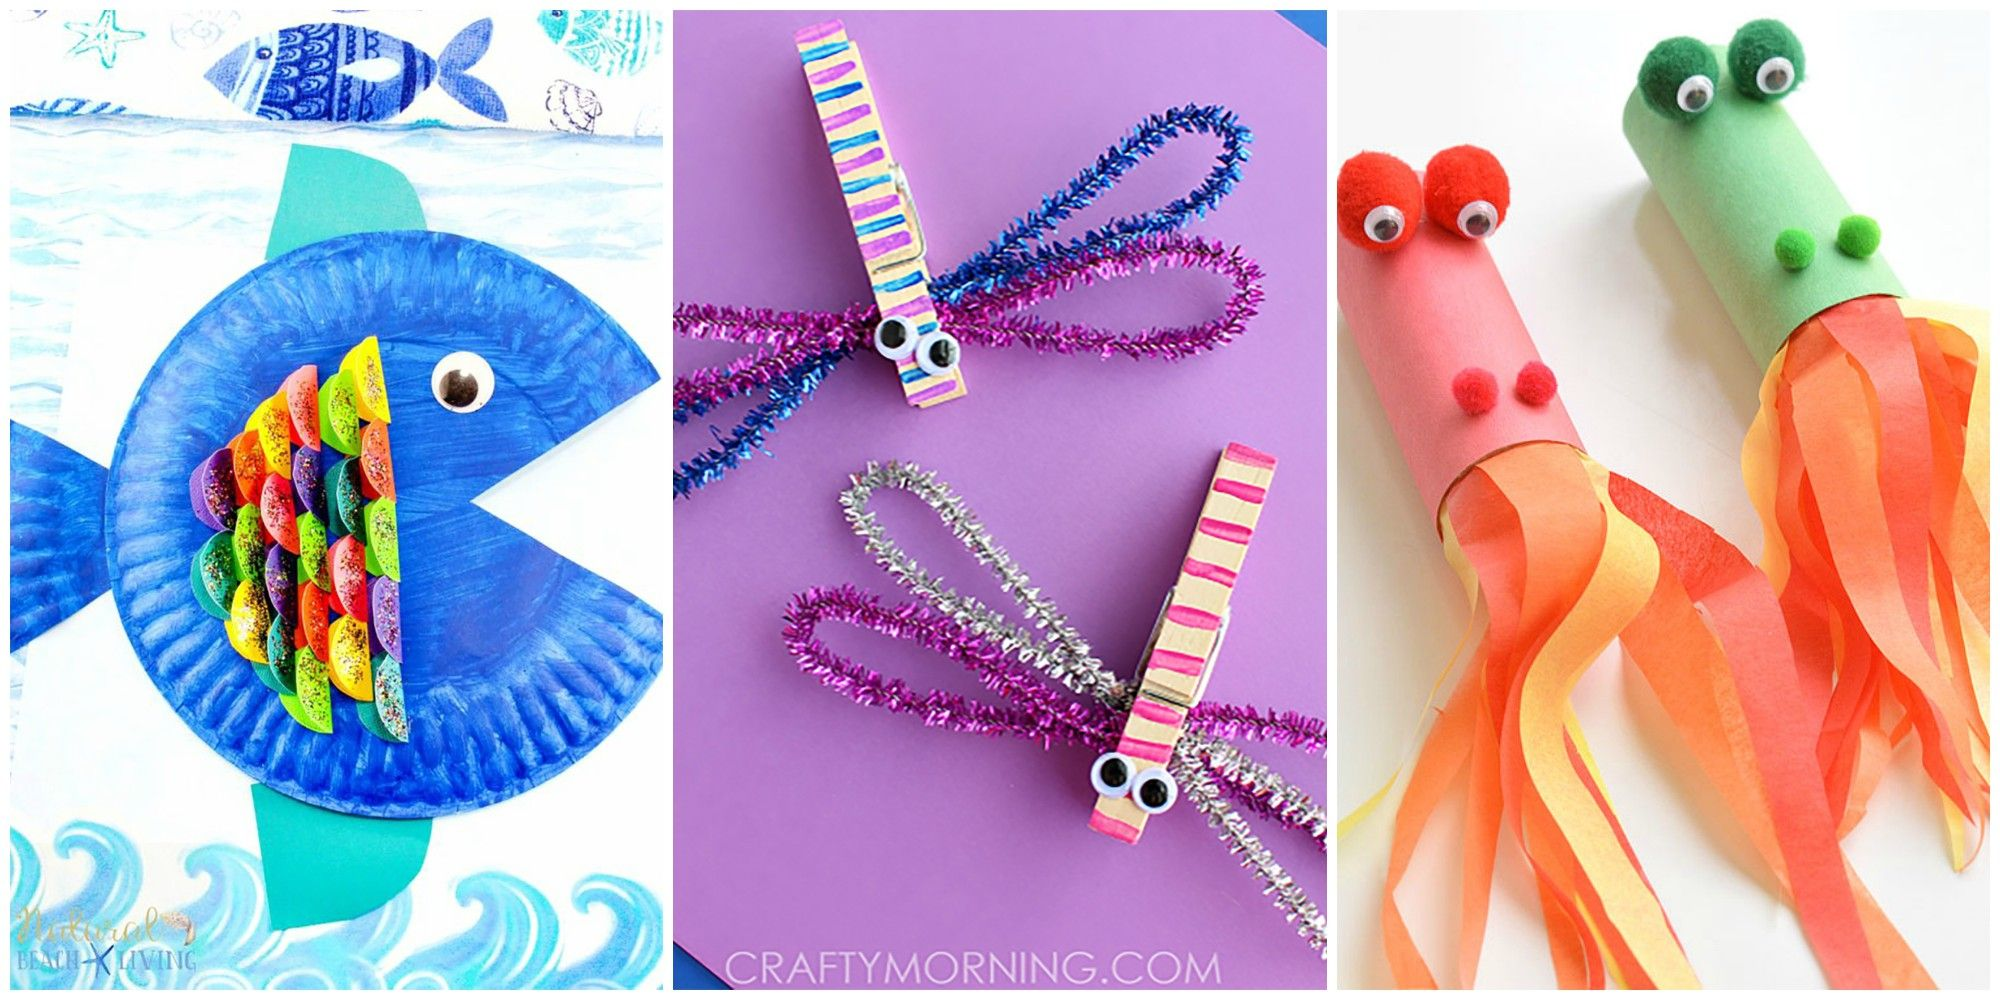 Learn more about fun and easy paper art crafts for kids. 15 Easy Craft Ideas For Kids Fun Diy Craft Projects For Kids To Make